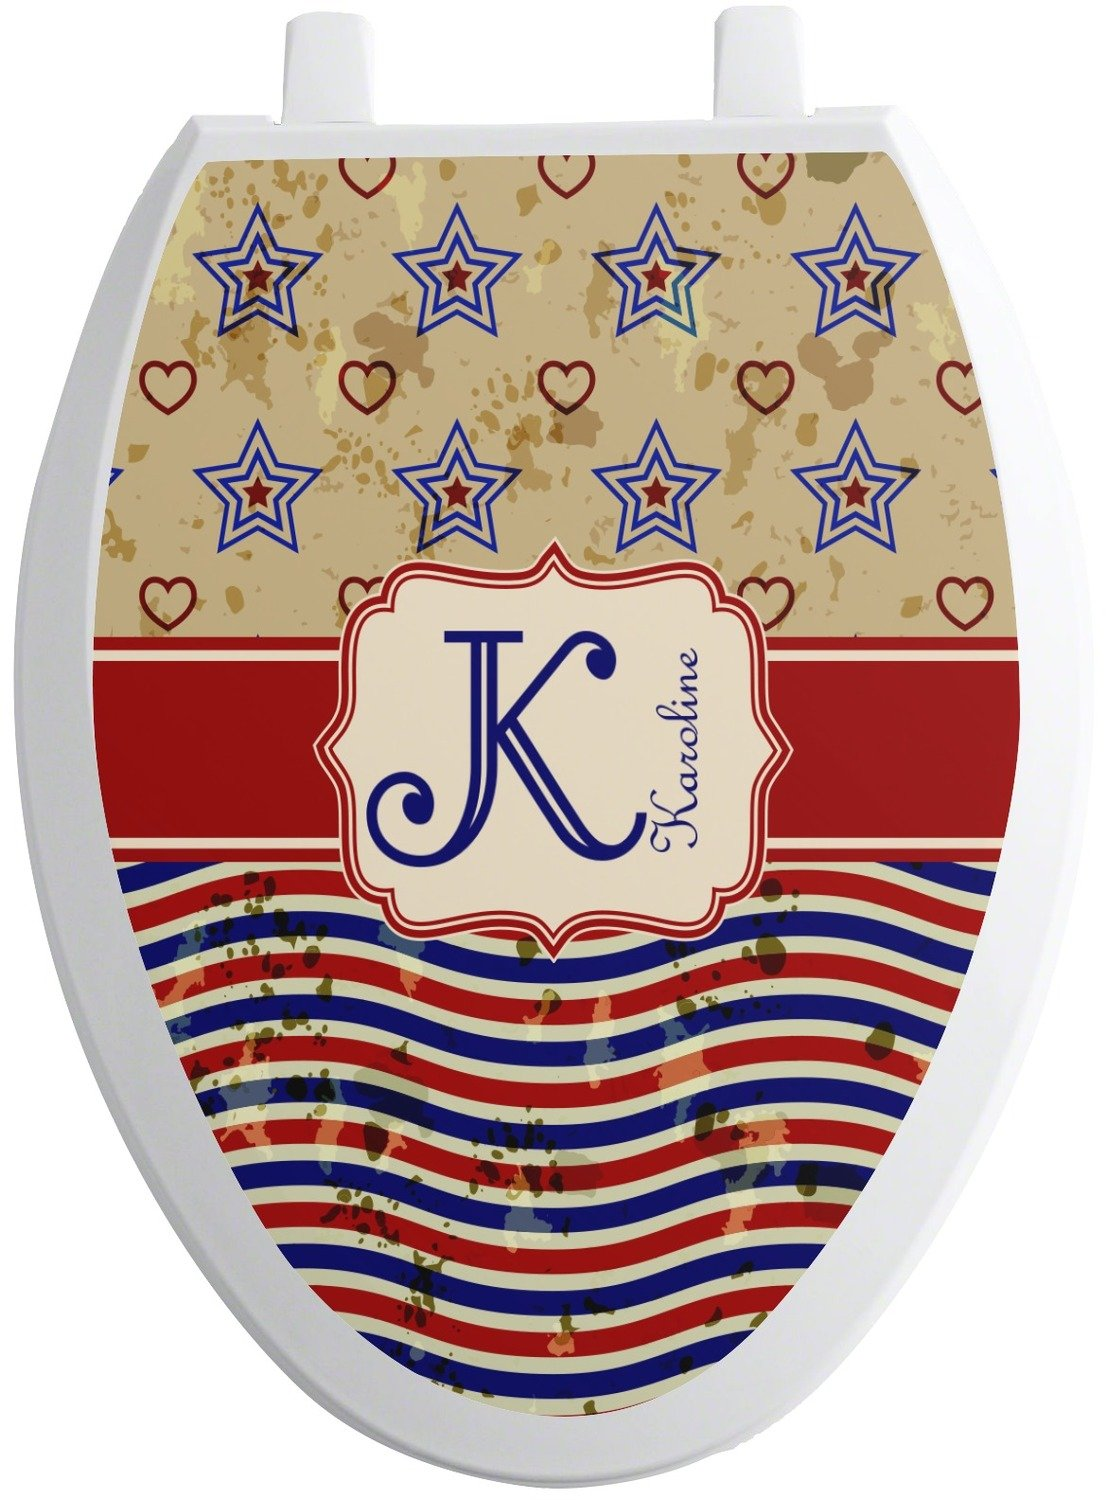 Vintage Stars & Stripes Toilet Seat Decal - Elongated (Personalized) high-quality